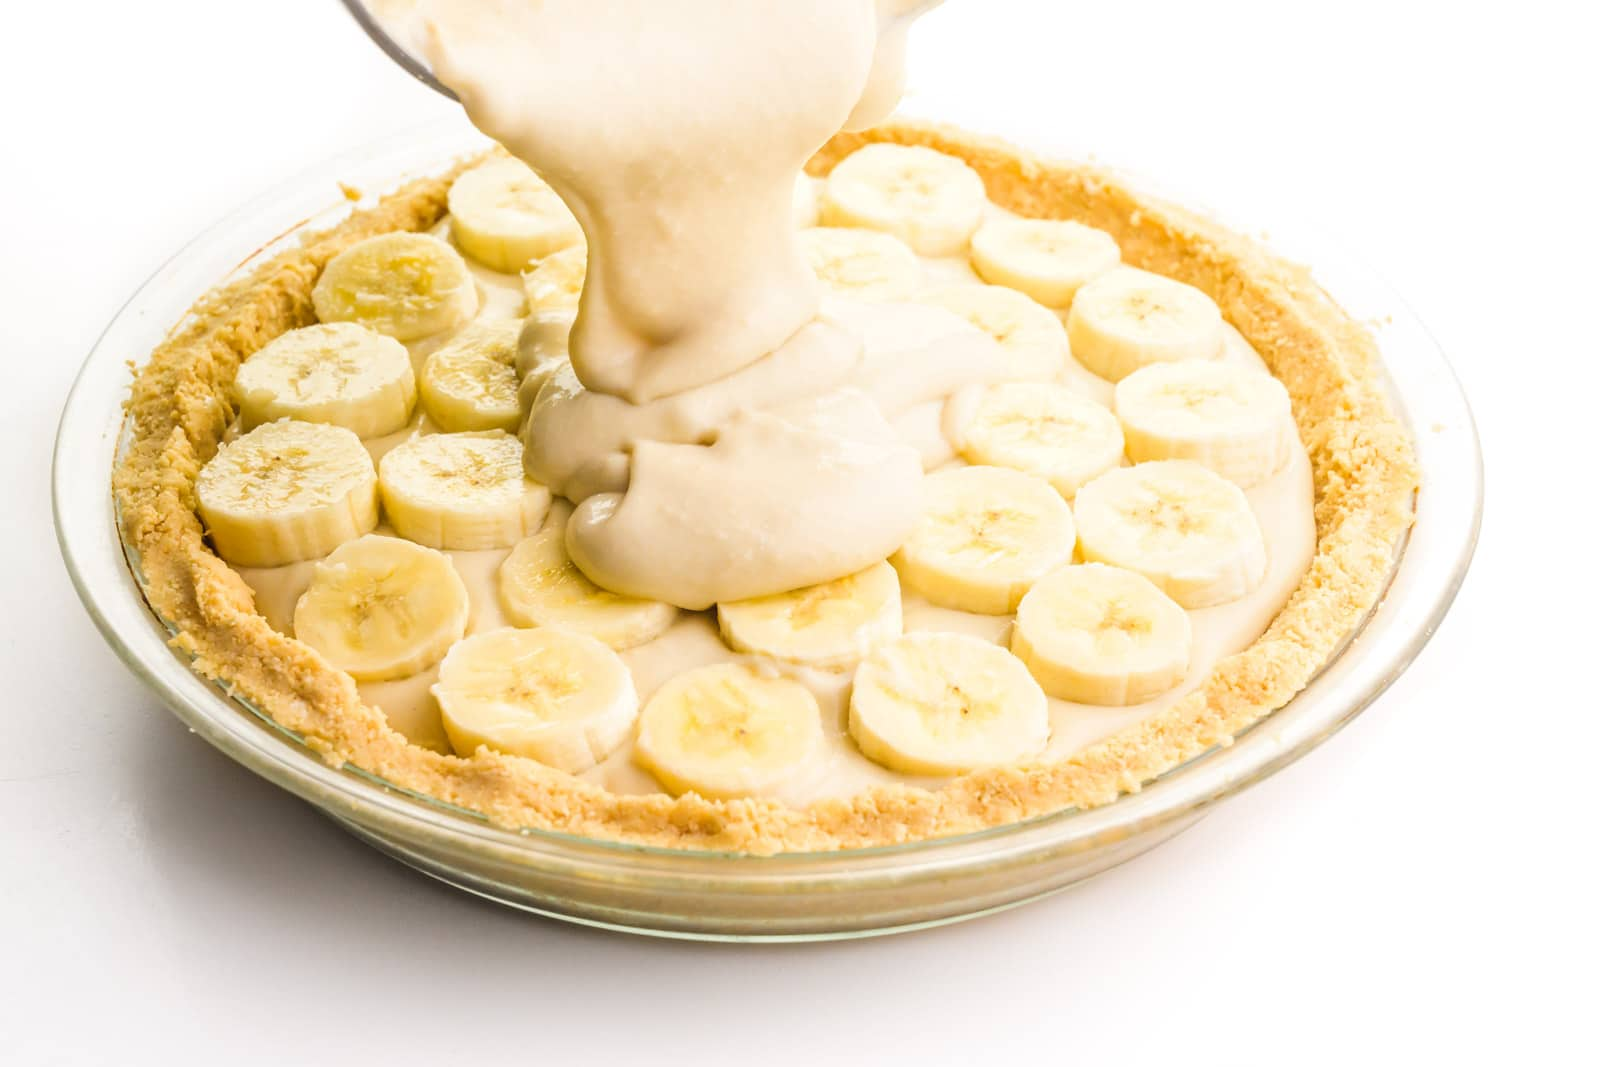 Vanilla pudding is being poured on top of a pie with pudding and banana slices on top.